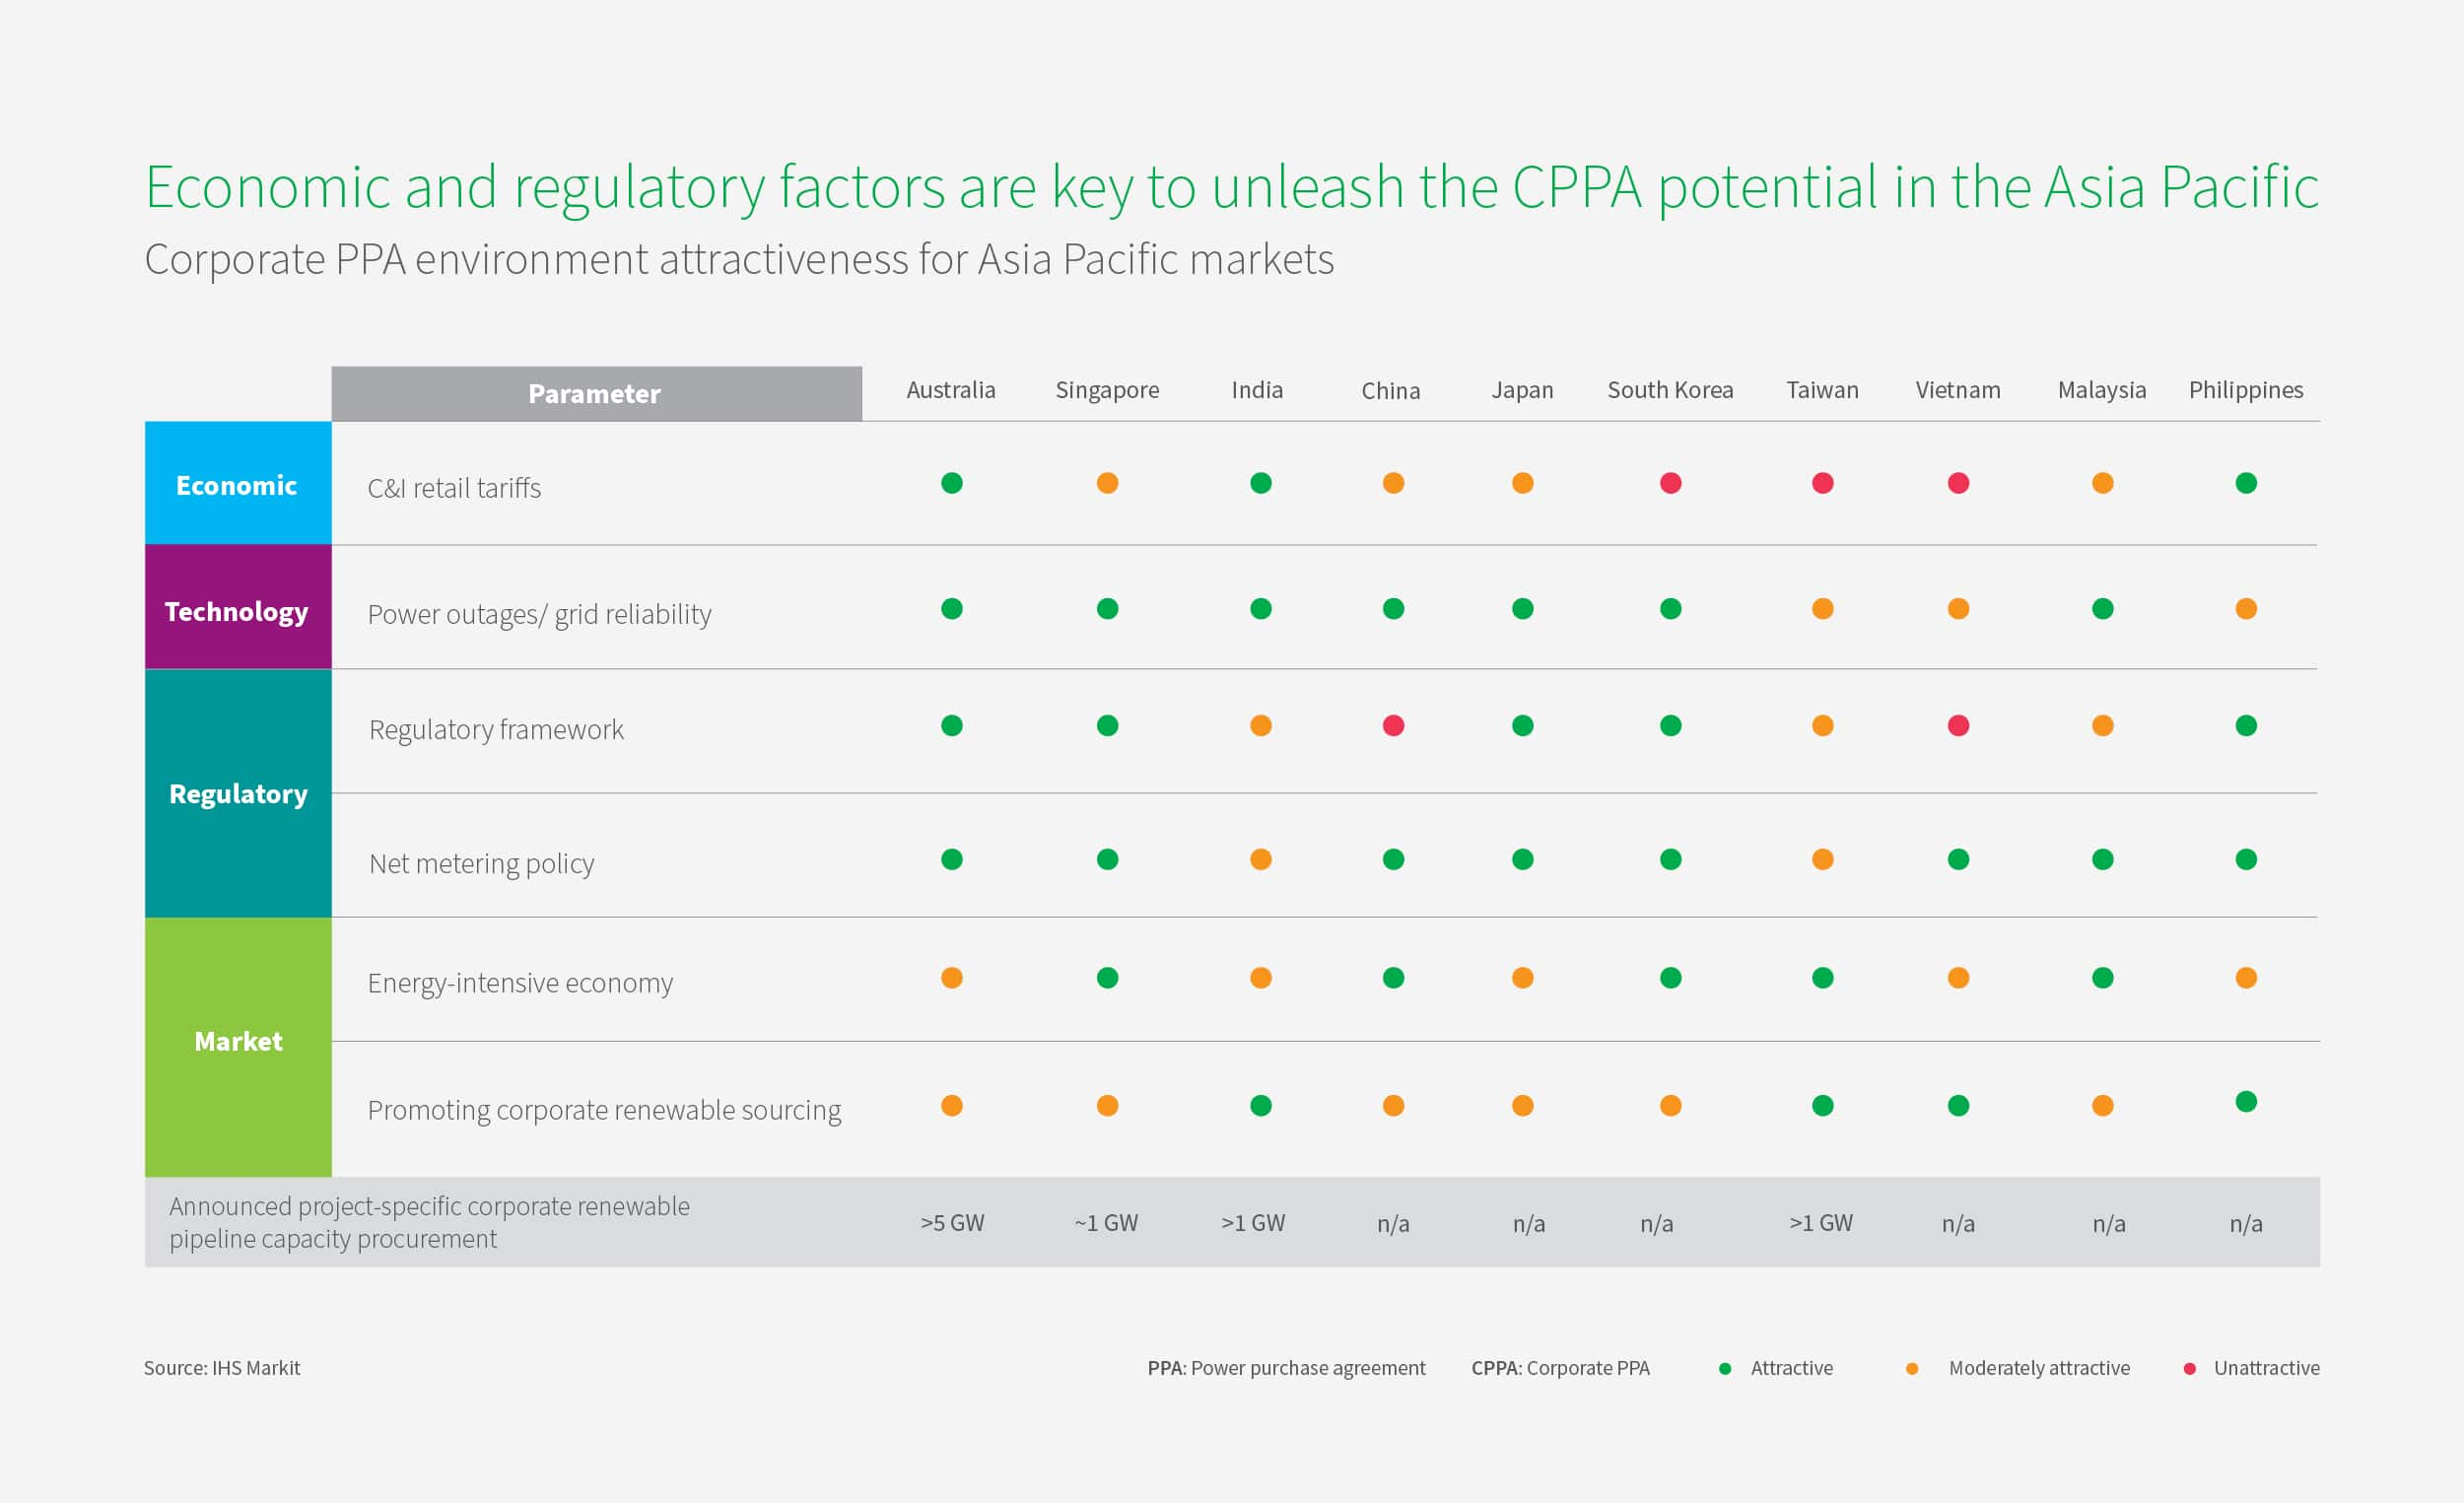 Economic and regulatory factors are key to unleash the CPPA potential in Asia Pacific